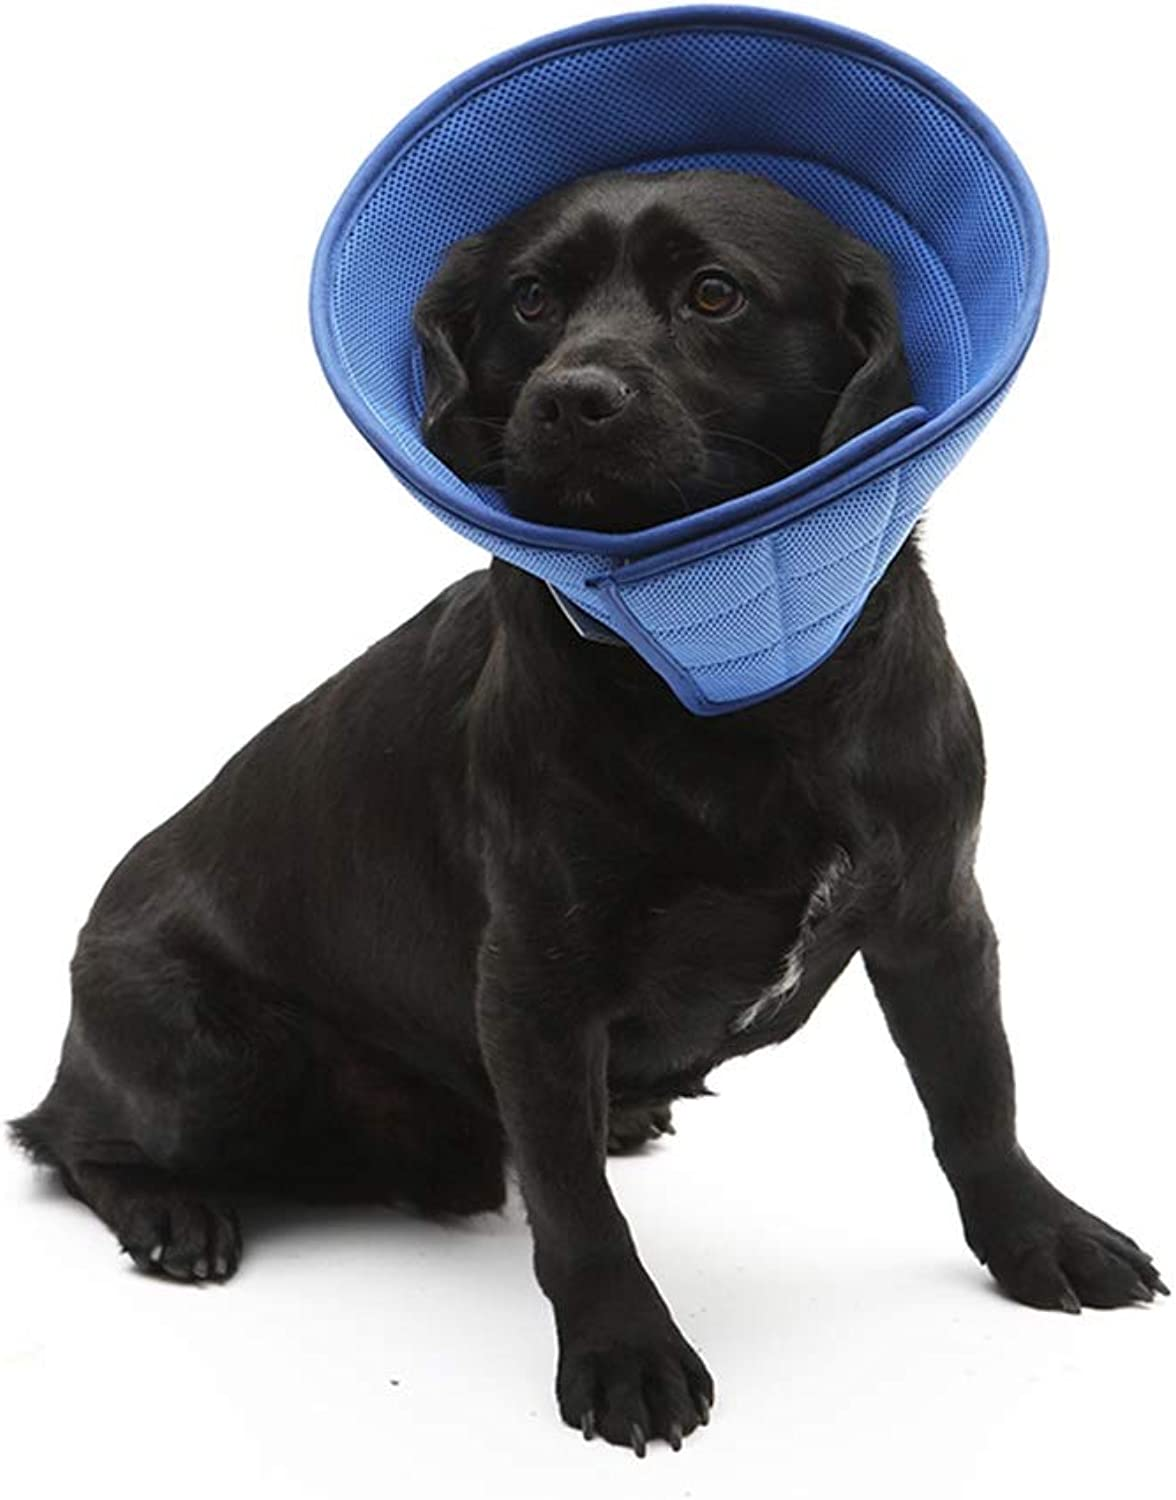 QIQIPET Soft Recovery Pet Cone Smart Collar, Lightweight Elizabethan Collar for Cats Dogs (color   bluee, Size   L)